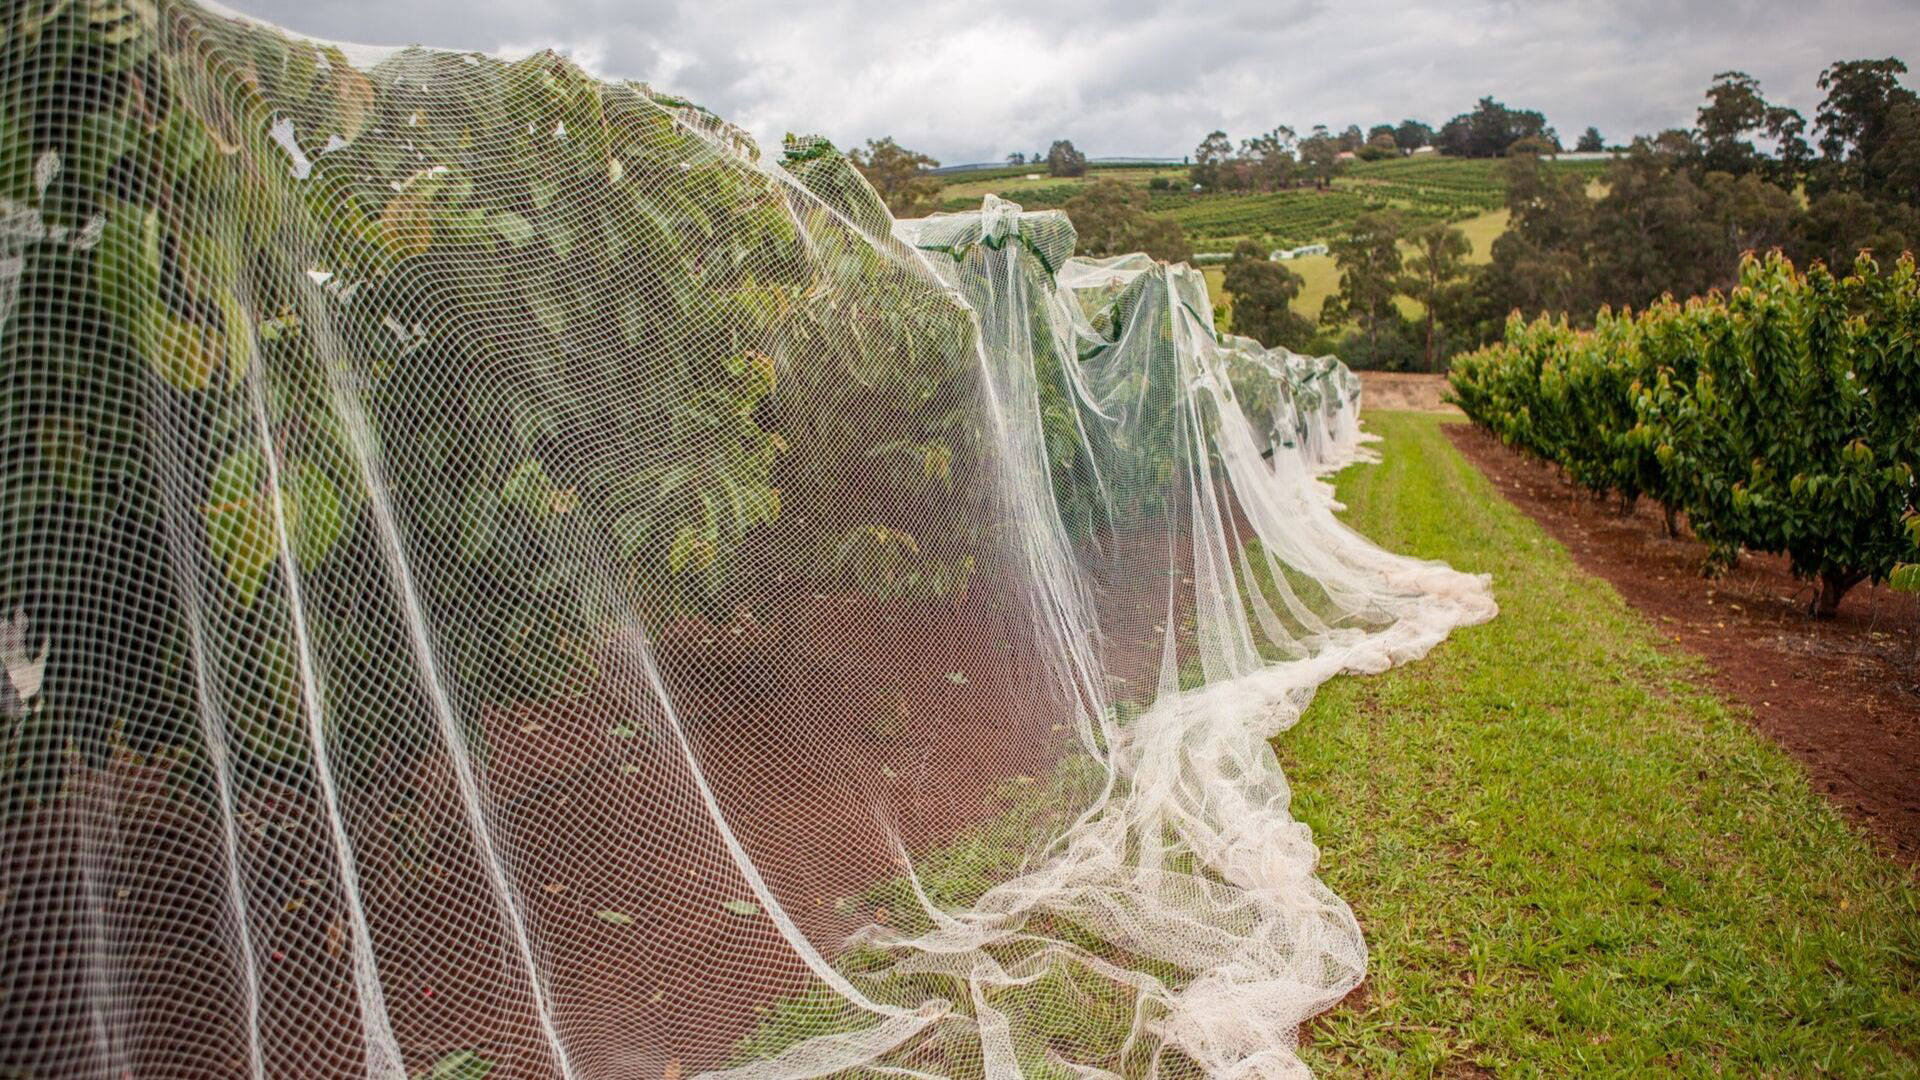 bird netting on trees